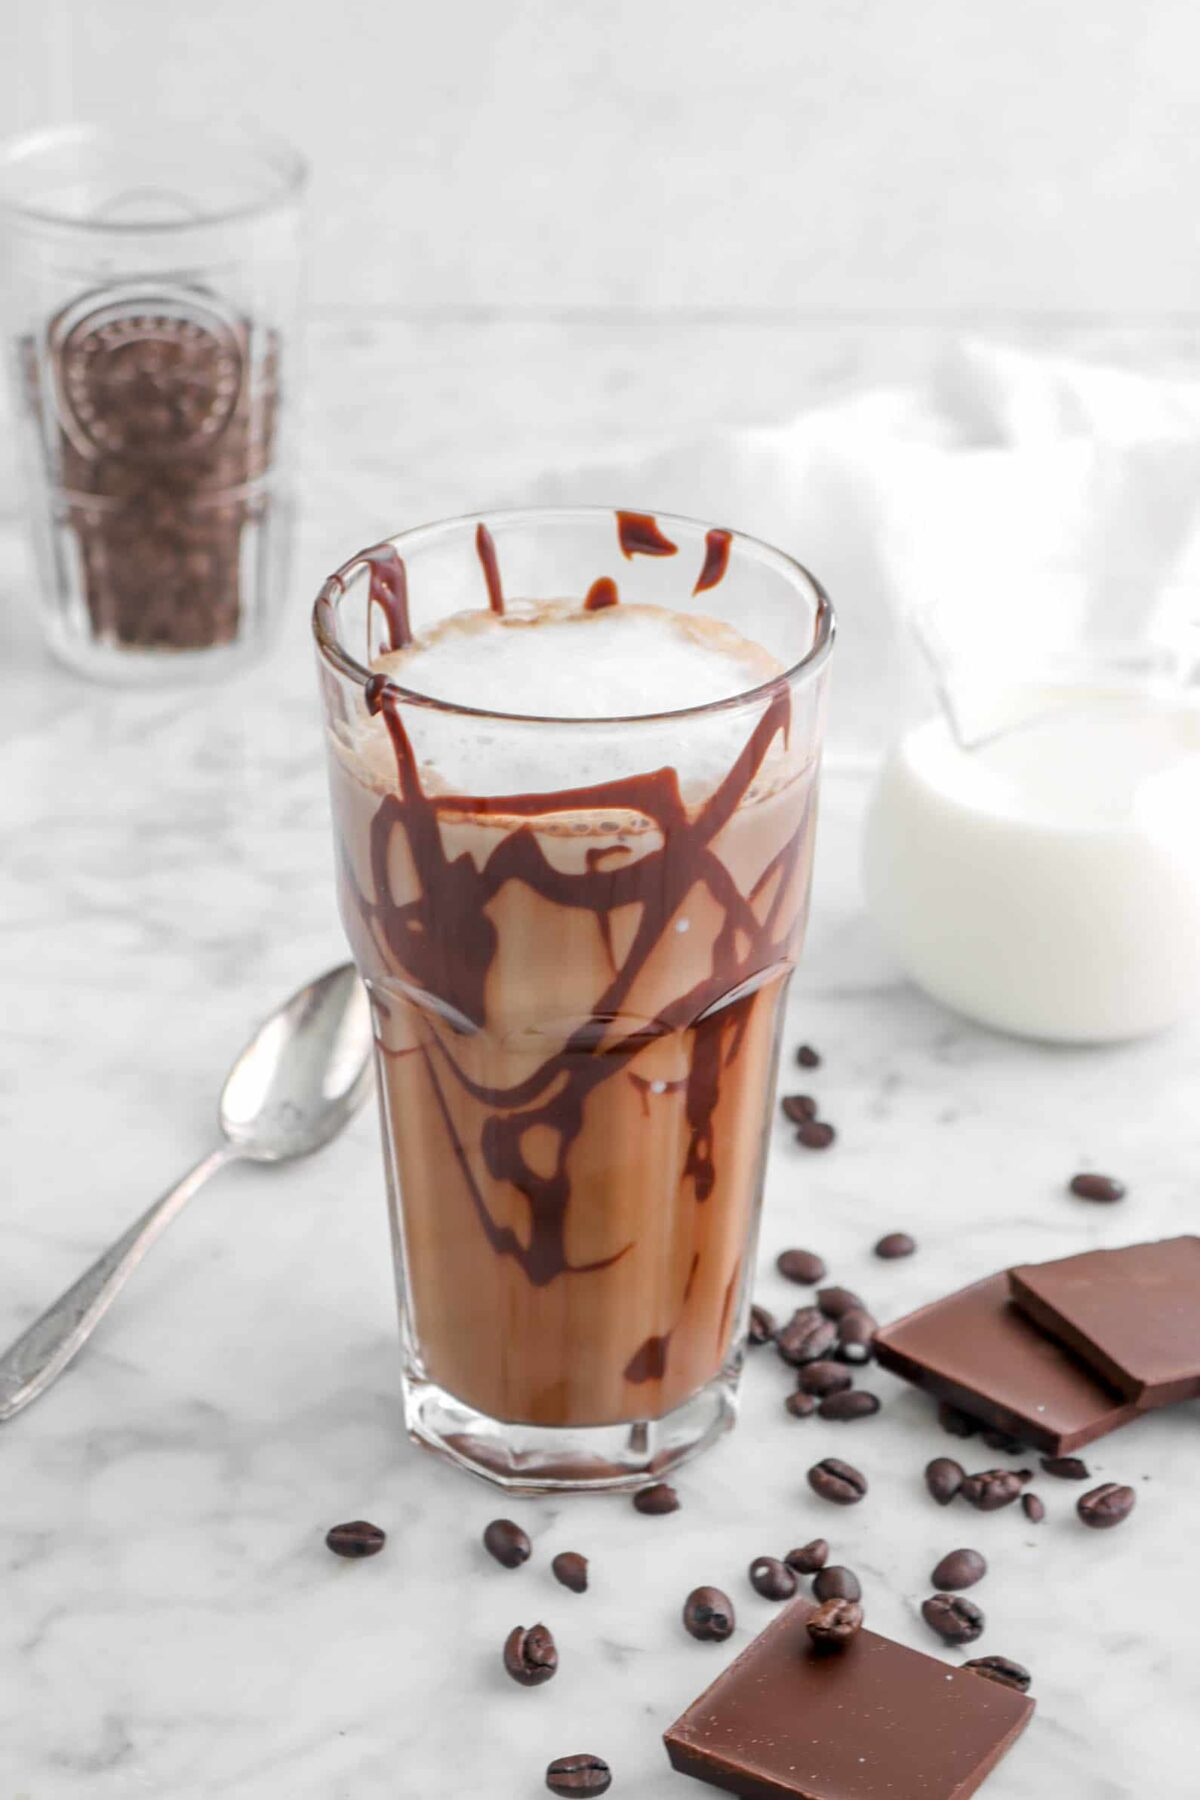 milk added to coffee in glass